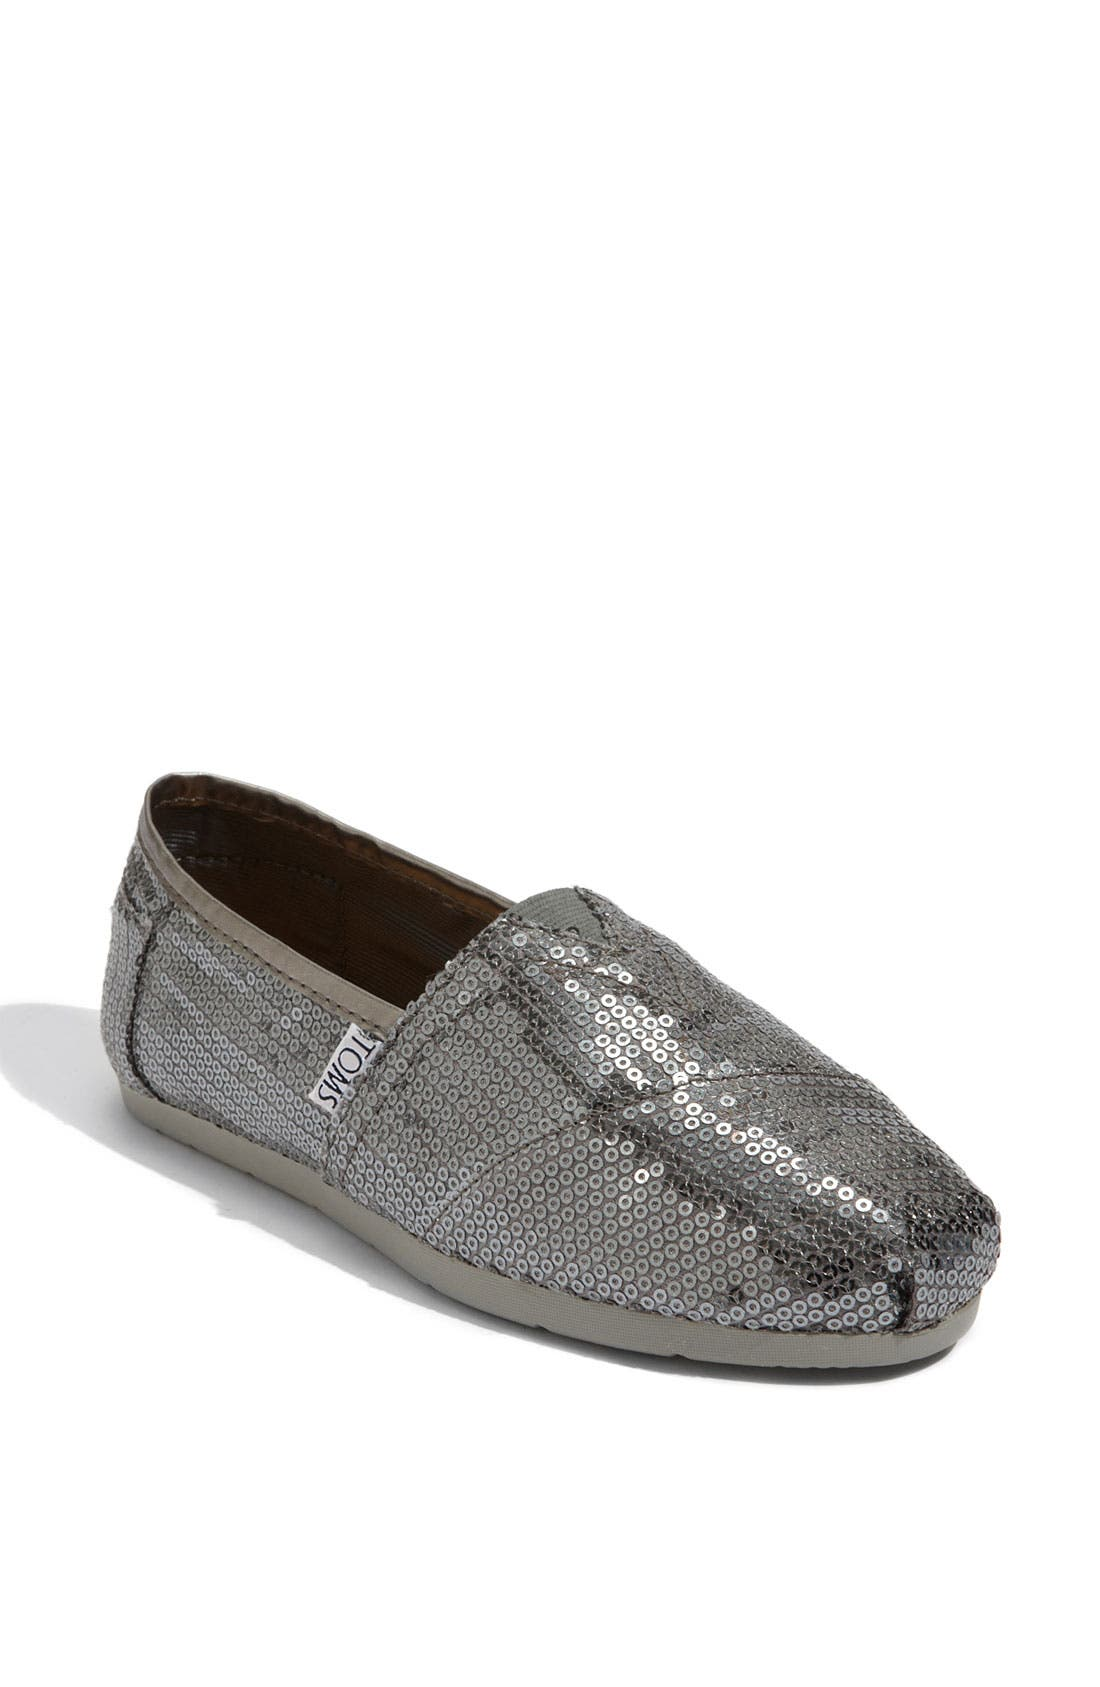 Alternate Image 1 Selected - TOMS 'Classic - Sequins' Slip-On (Women) (Nordstrom Exclusive)